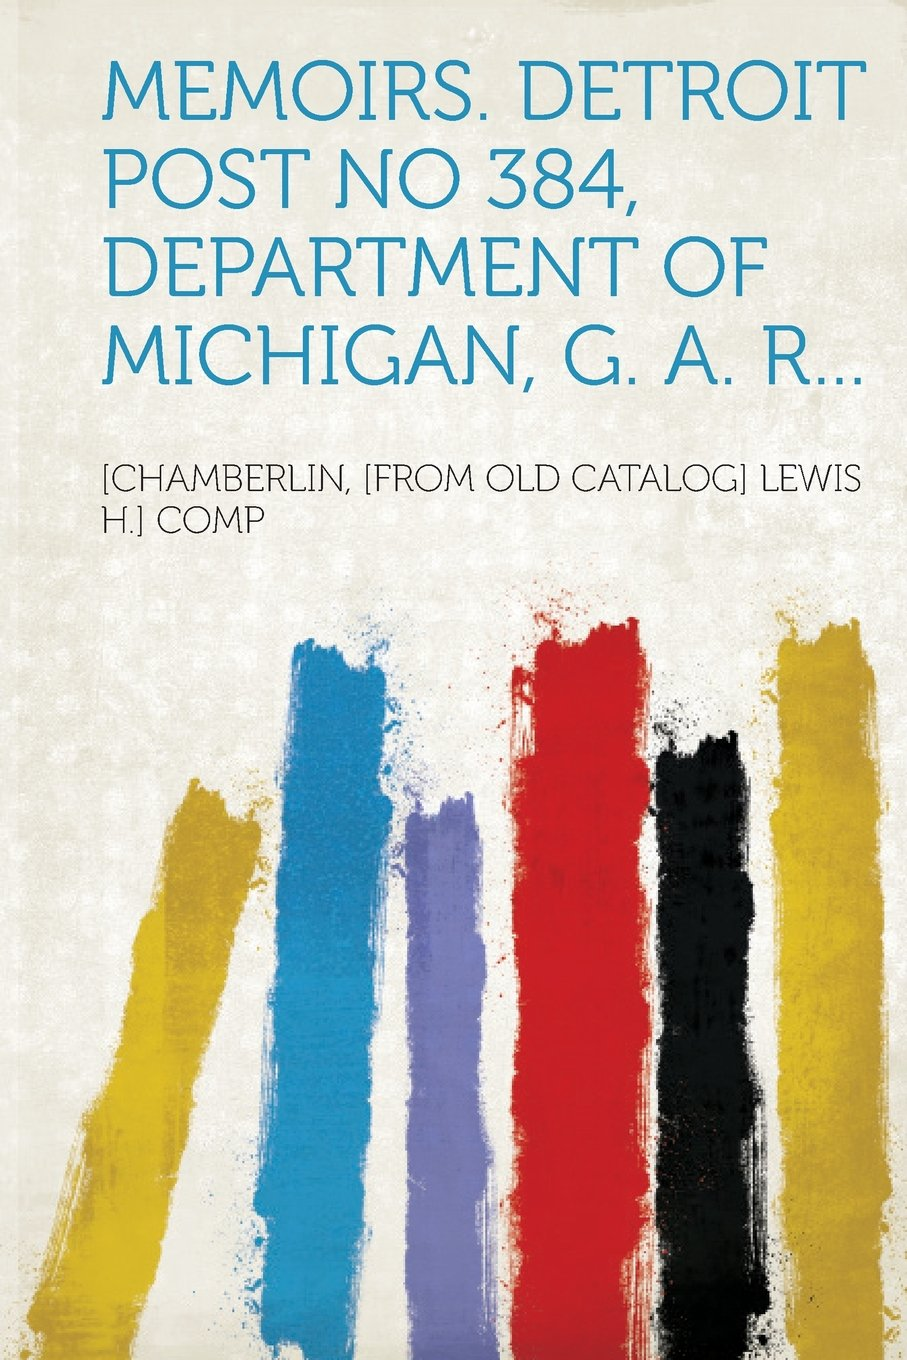 Memoirs. Detroit post no 384, Department of Michigan, G. A. R... PDF